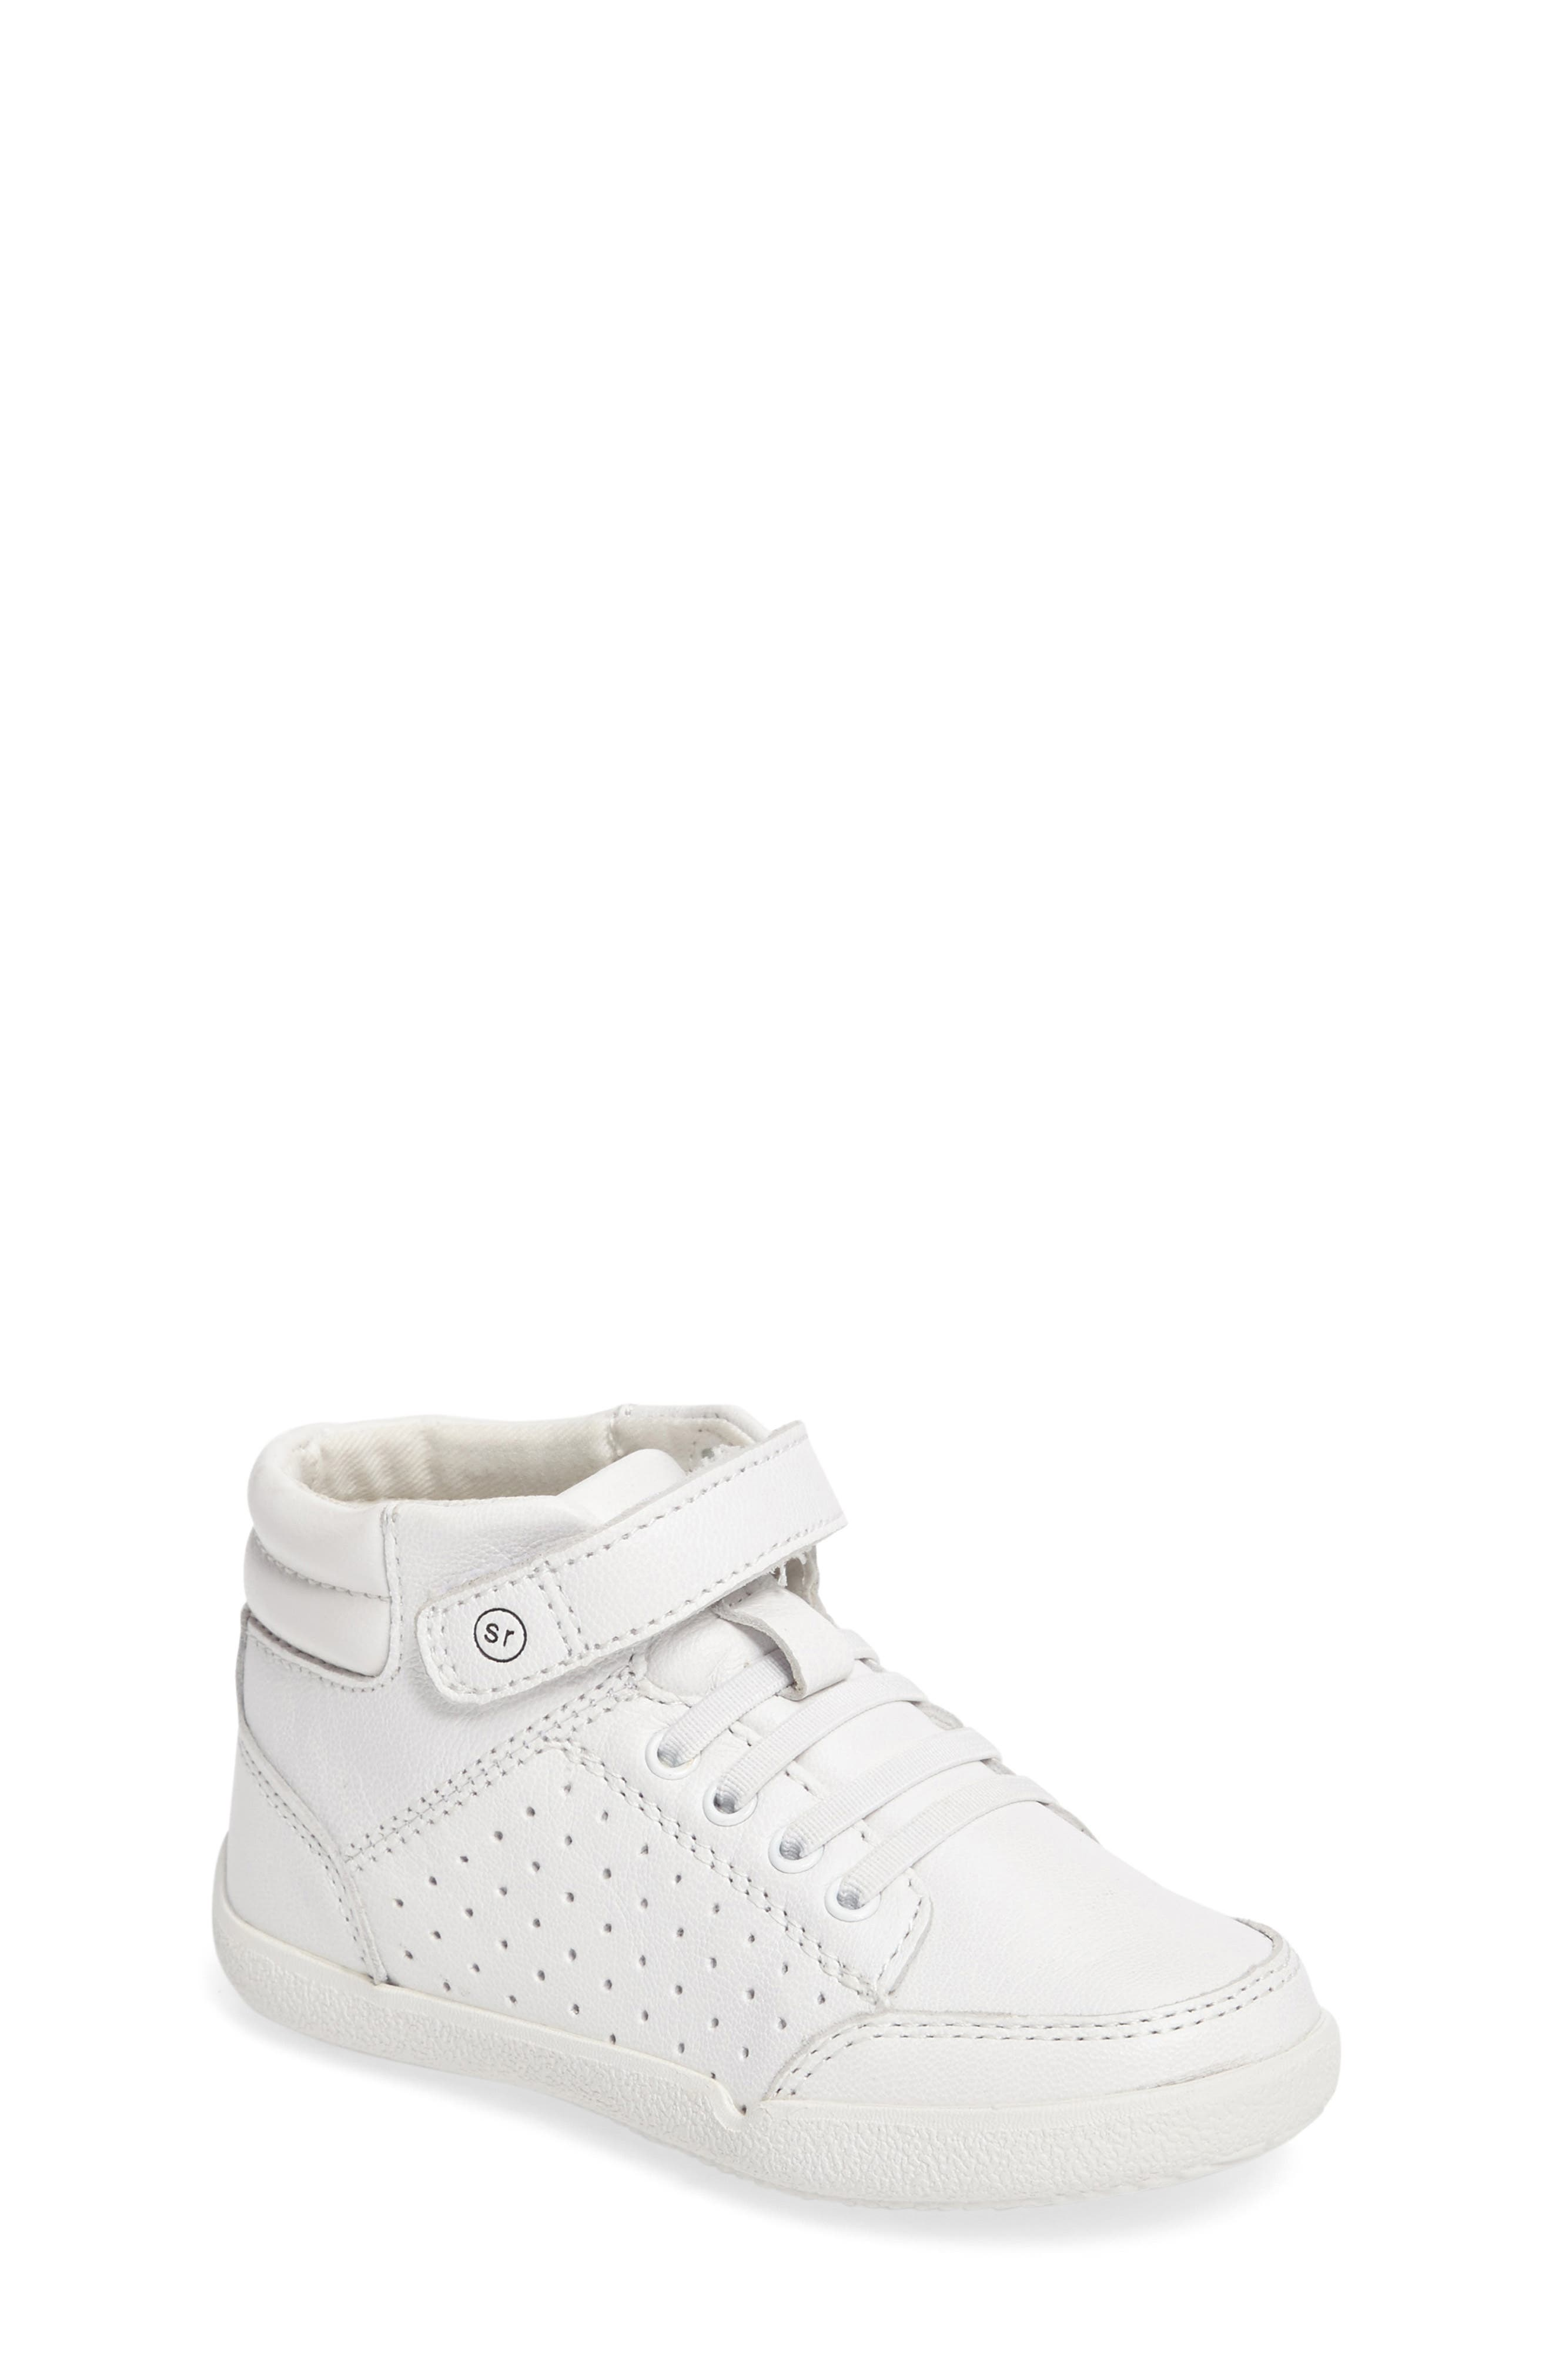 Stride Rite Stone High Top Sneaker (Baby, Walker & Toddler)